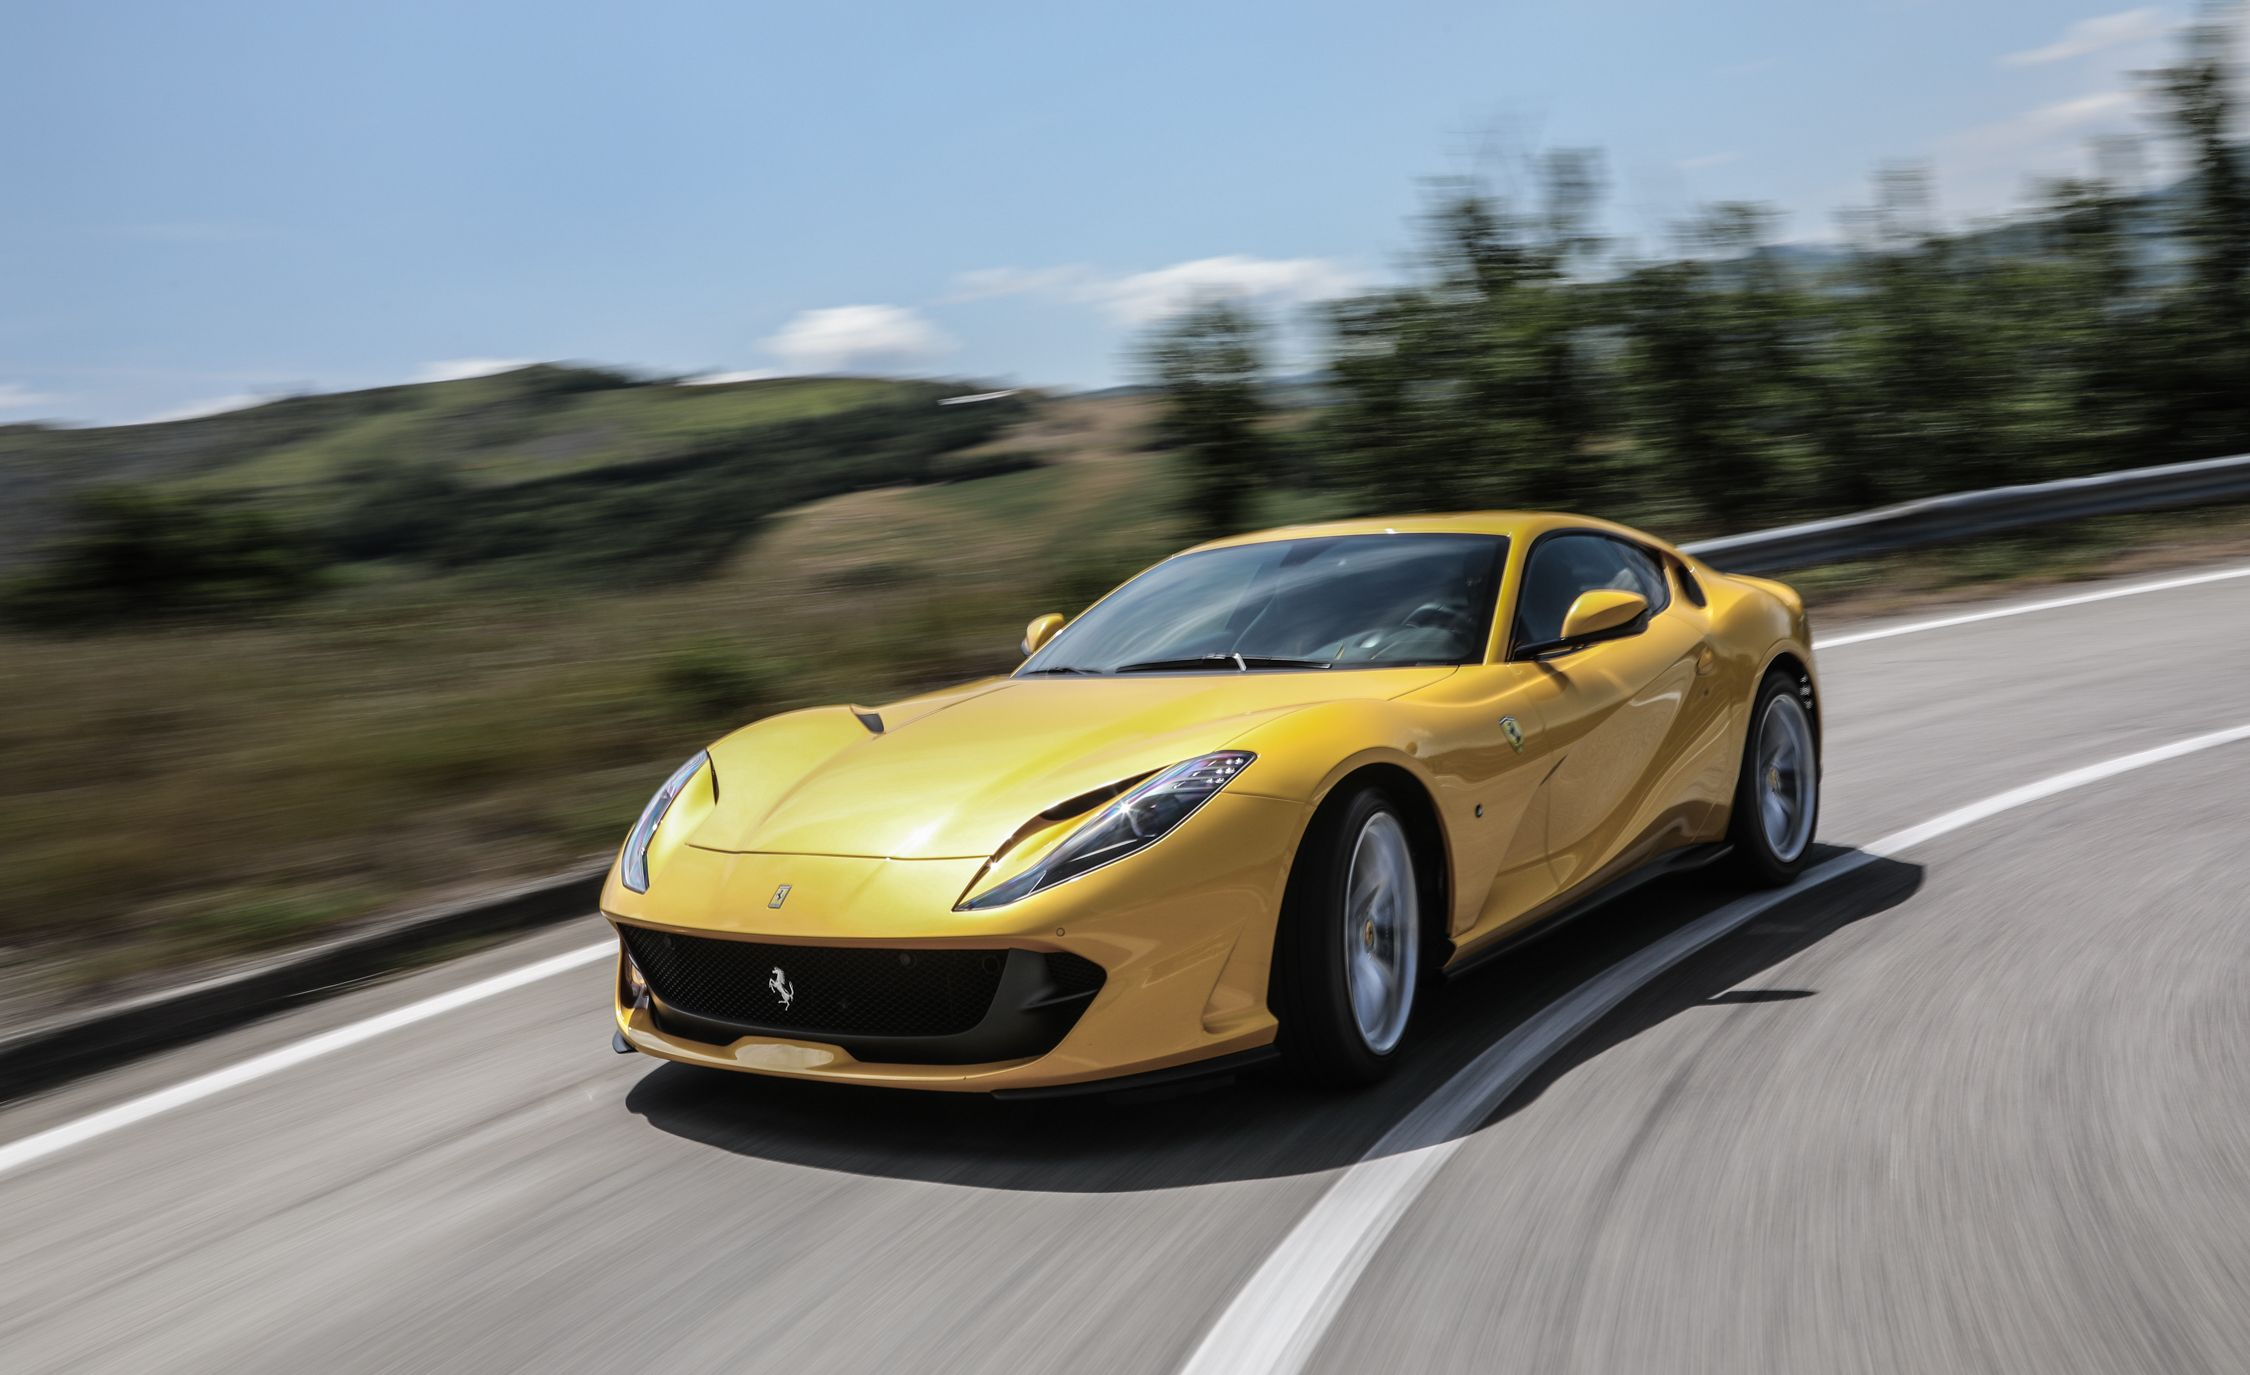 Toyota Build And Price >> 2018 Ferrari 812 Superfast Pictures | Photo Gallery | Car ...